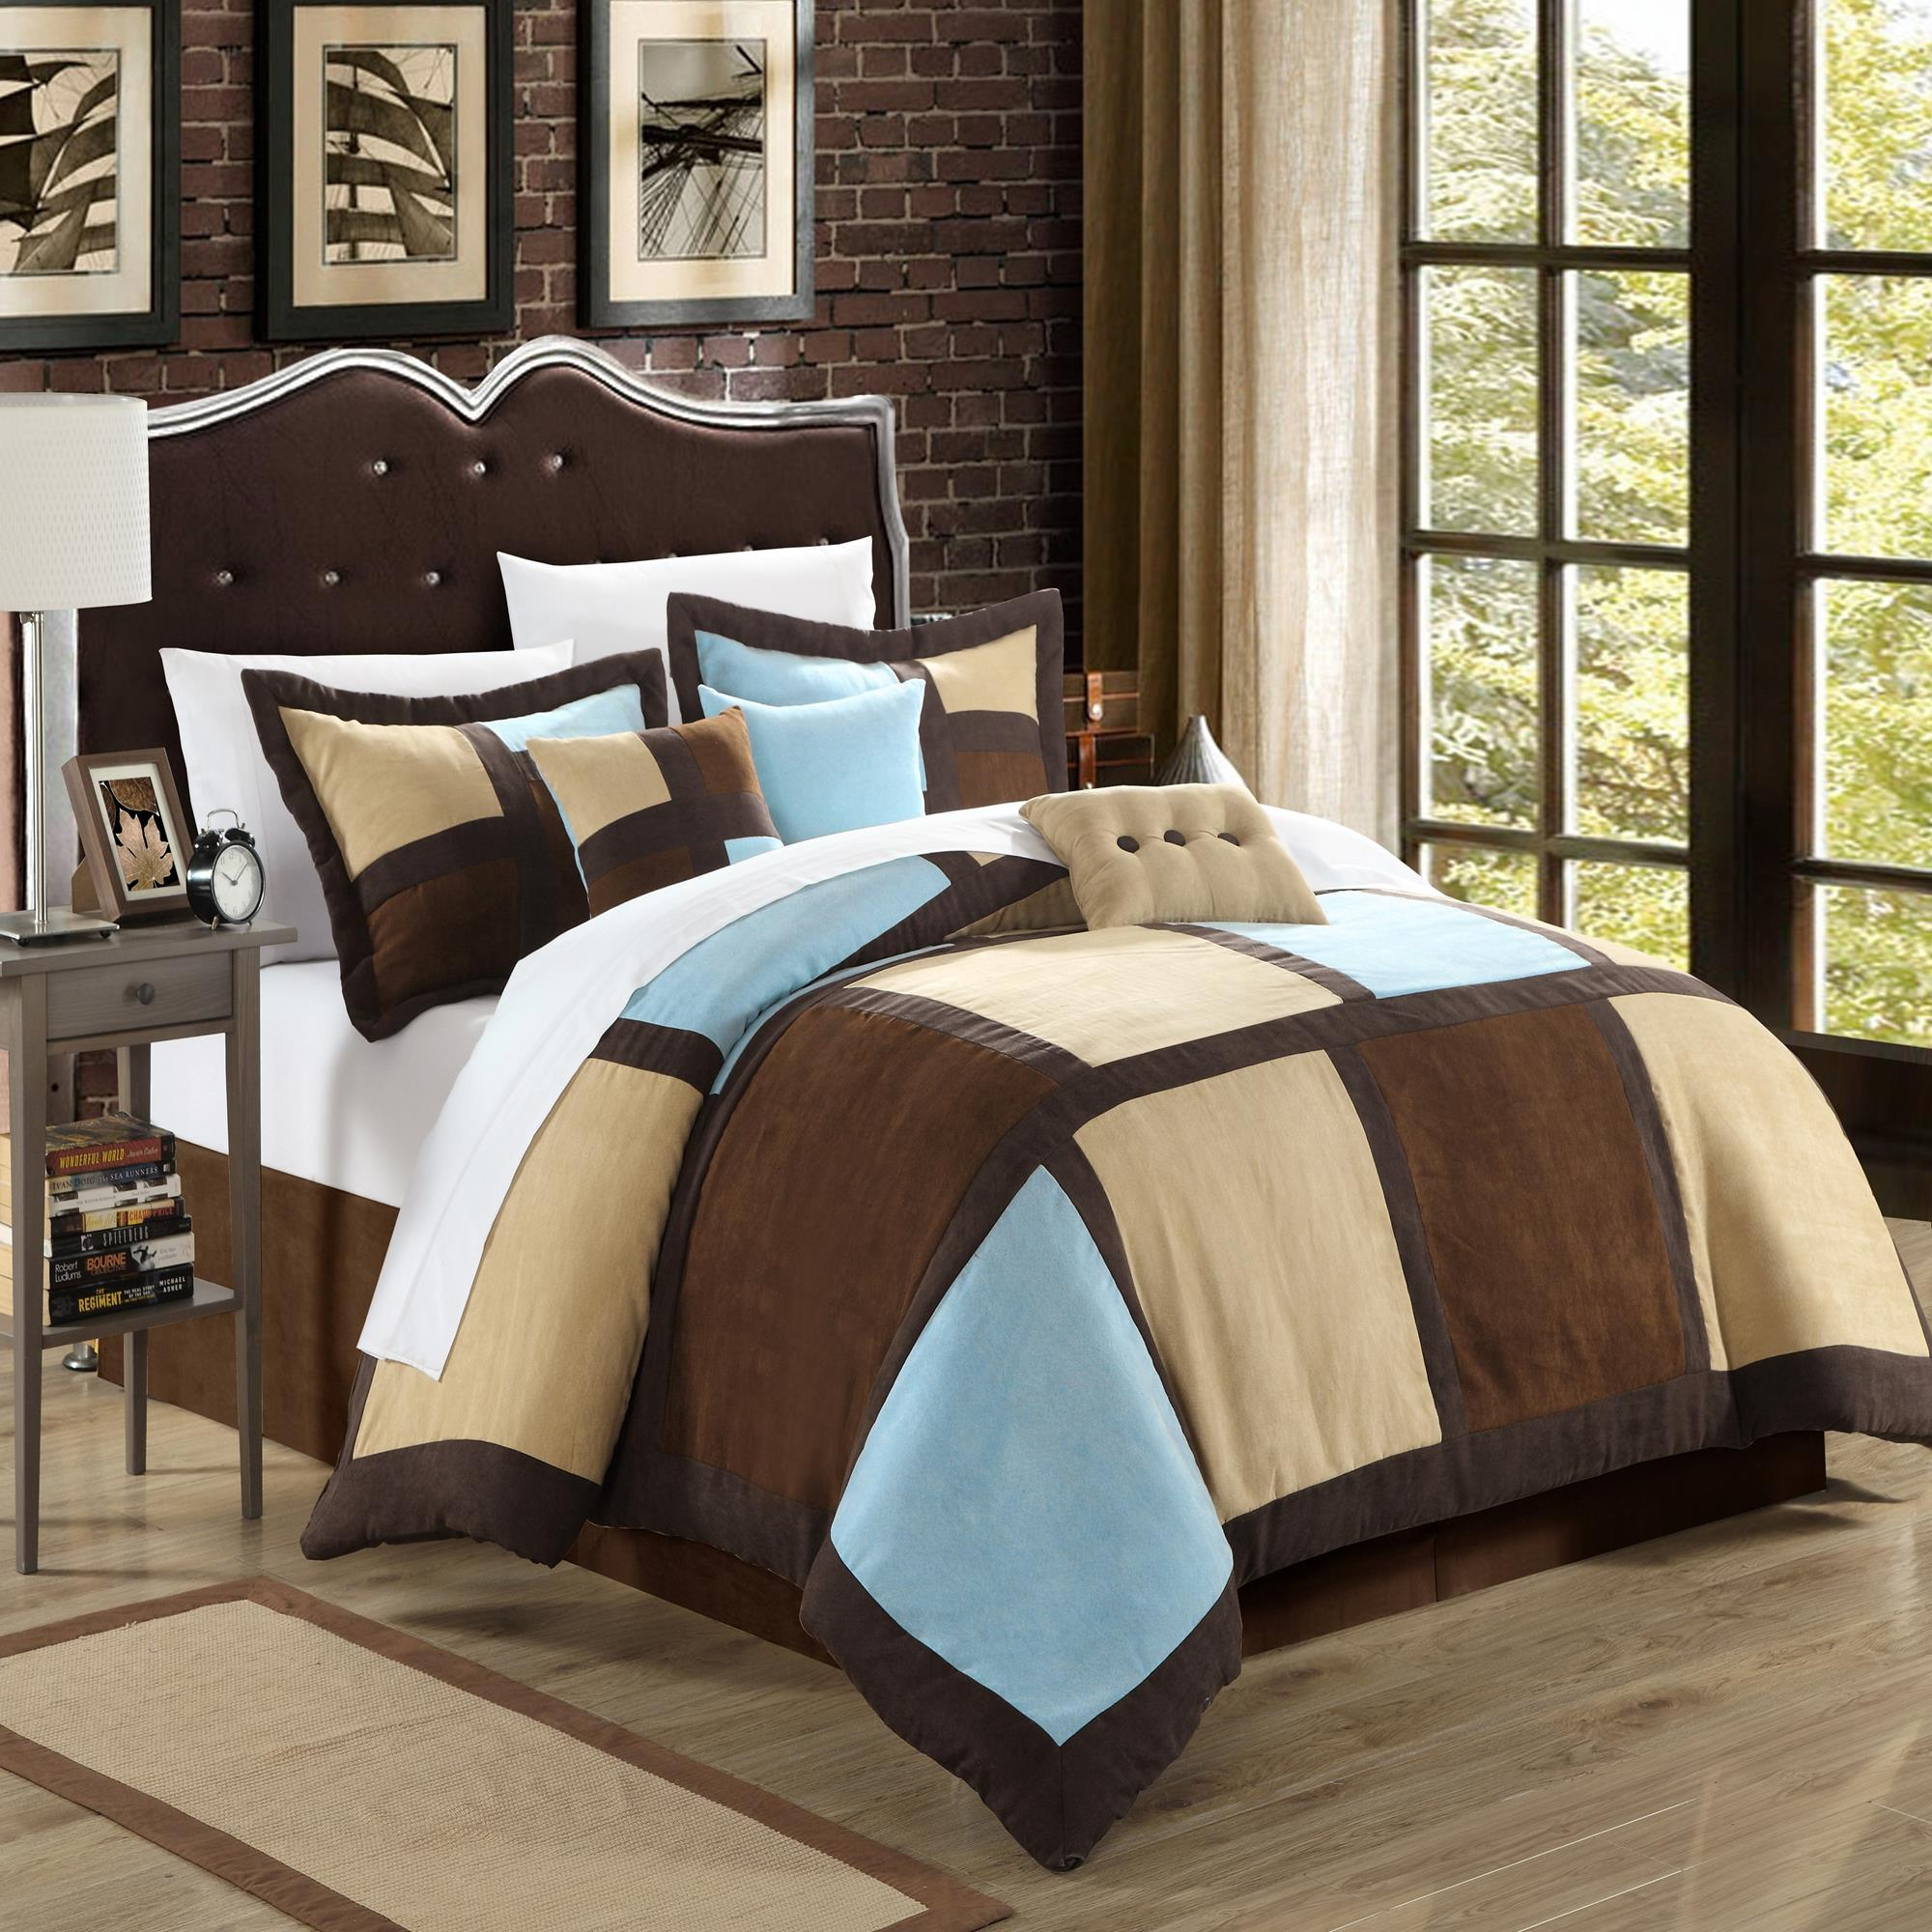 Chic Home Diana Microsuede Blue, Browns, Ivory 7 Piece Comforter Bed In A Bag Set